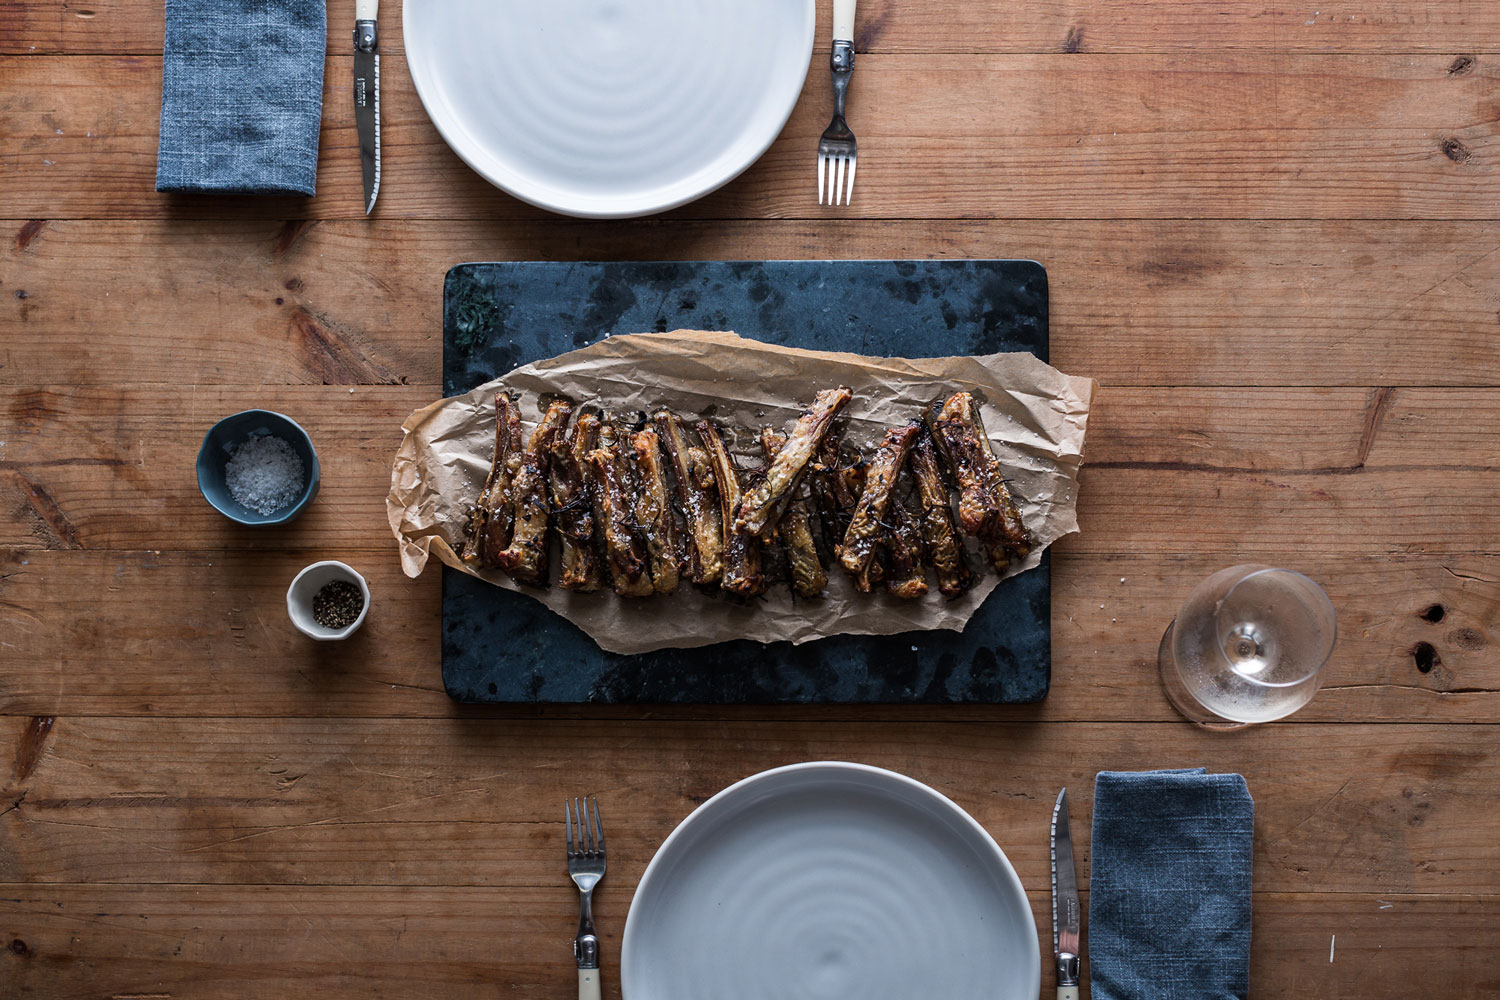 photograph-of-pot-and-pan-culinary-tailoring-ribs-photography-by-sarah-anderson-photography